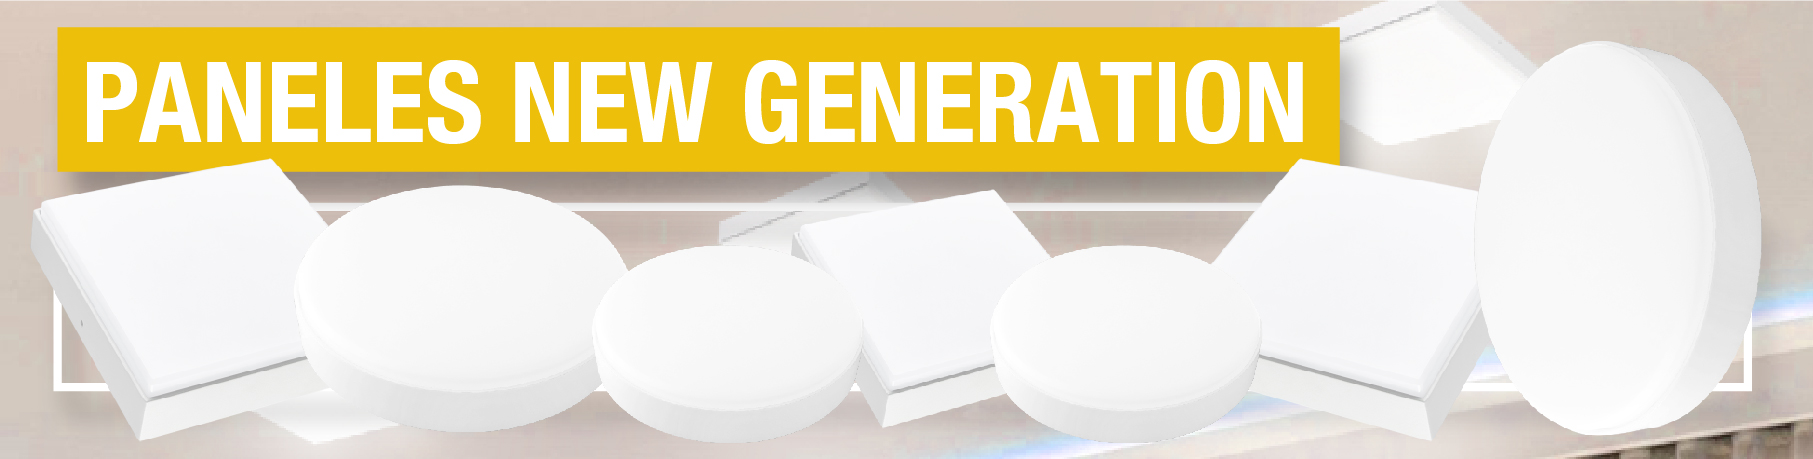 Paneles LED ★ NEW GENERATION ★ Frameless de Aplicar